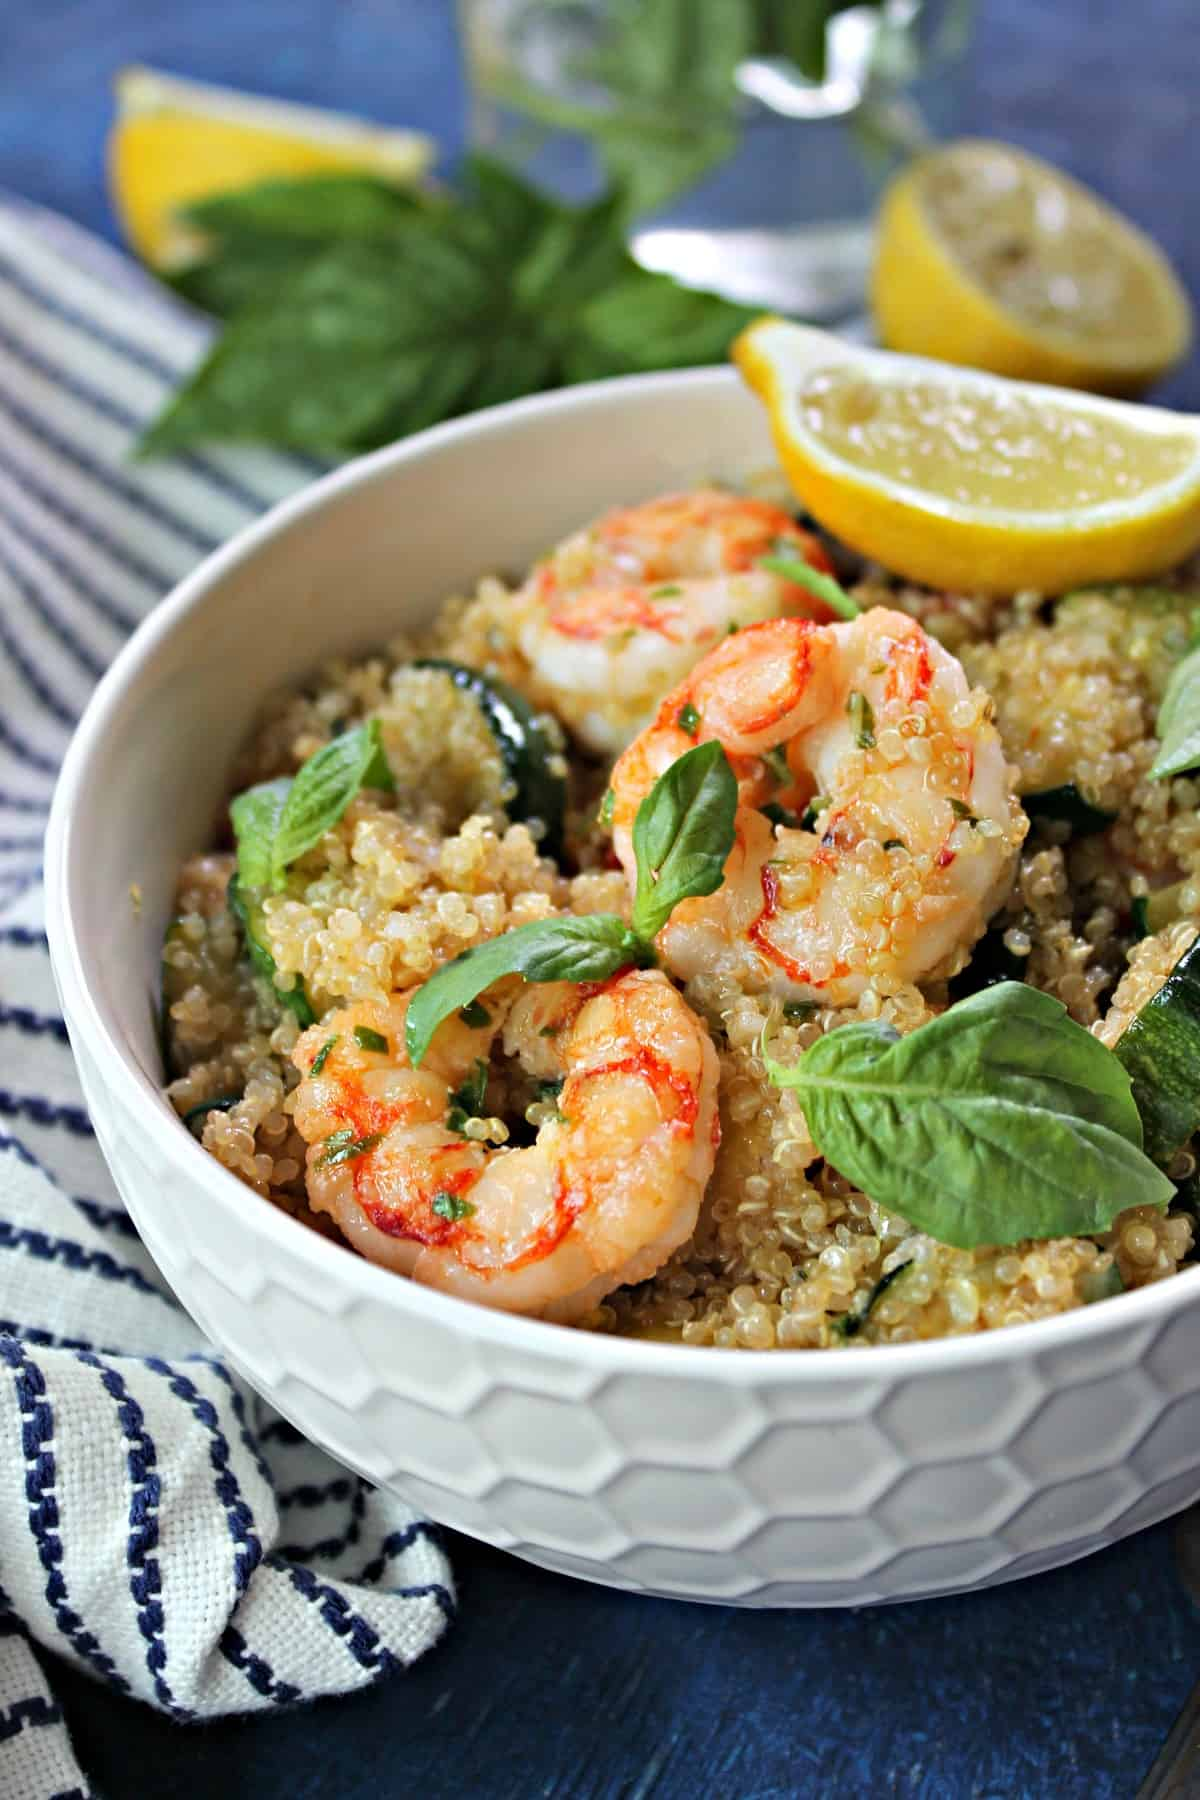 Tender Lemon basil shrimp and quinoa is a light yet filling meal that's perfect for a busy day's lunch or dinner